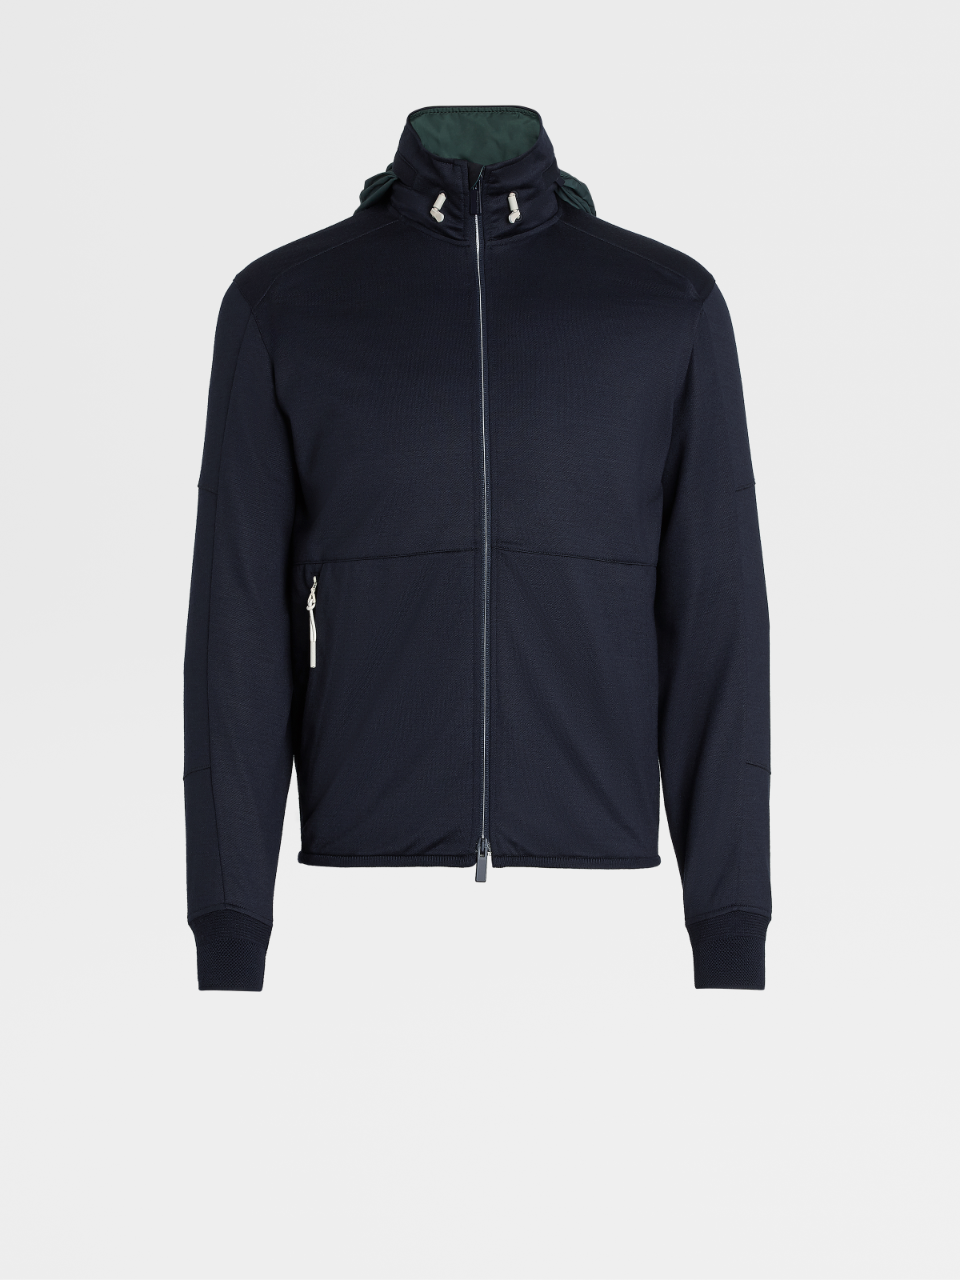 High Performance Wool Sweatshirt